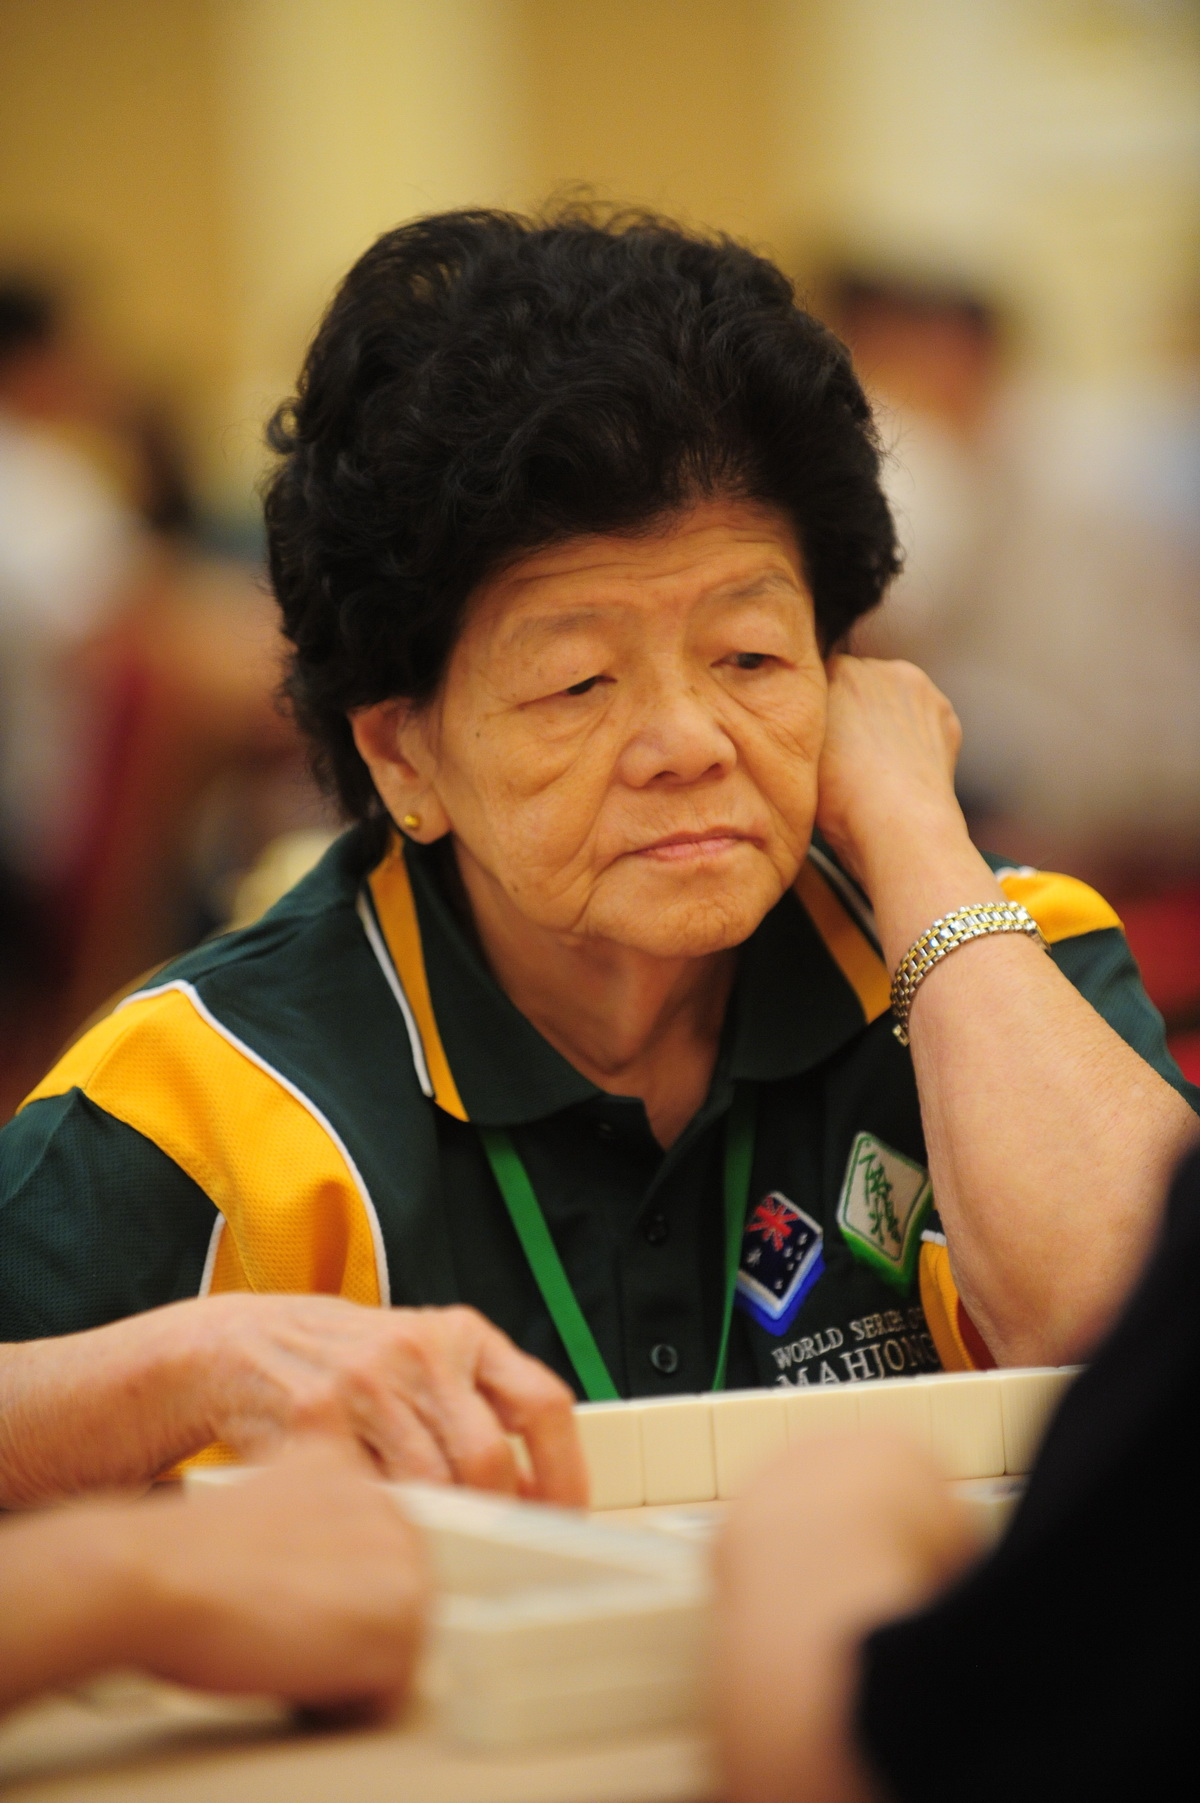 76-year-old-asian-woman-from-australia-who-comes-to-participate-in-her-wheelchair